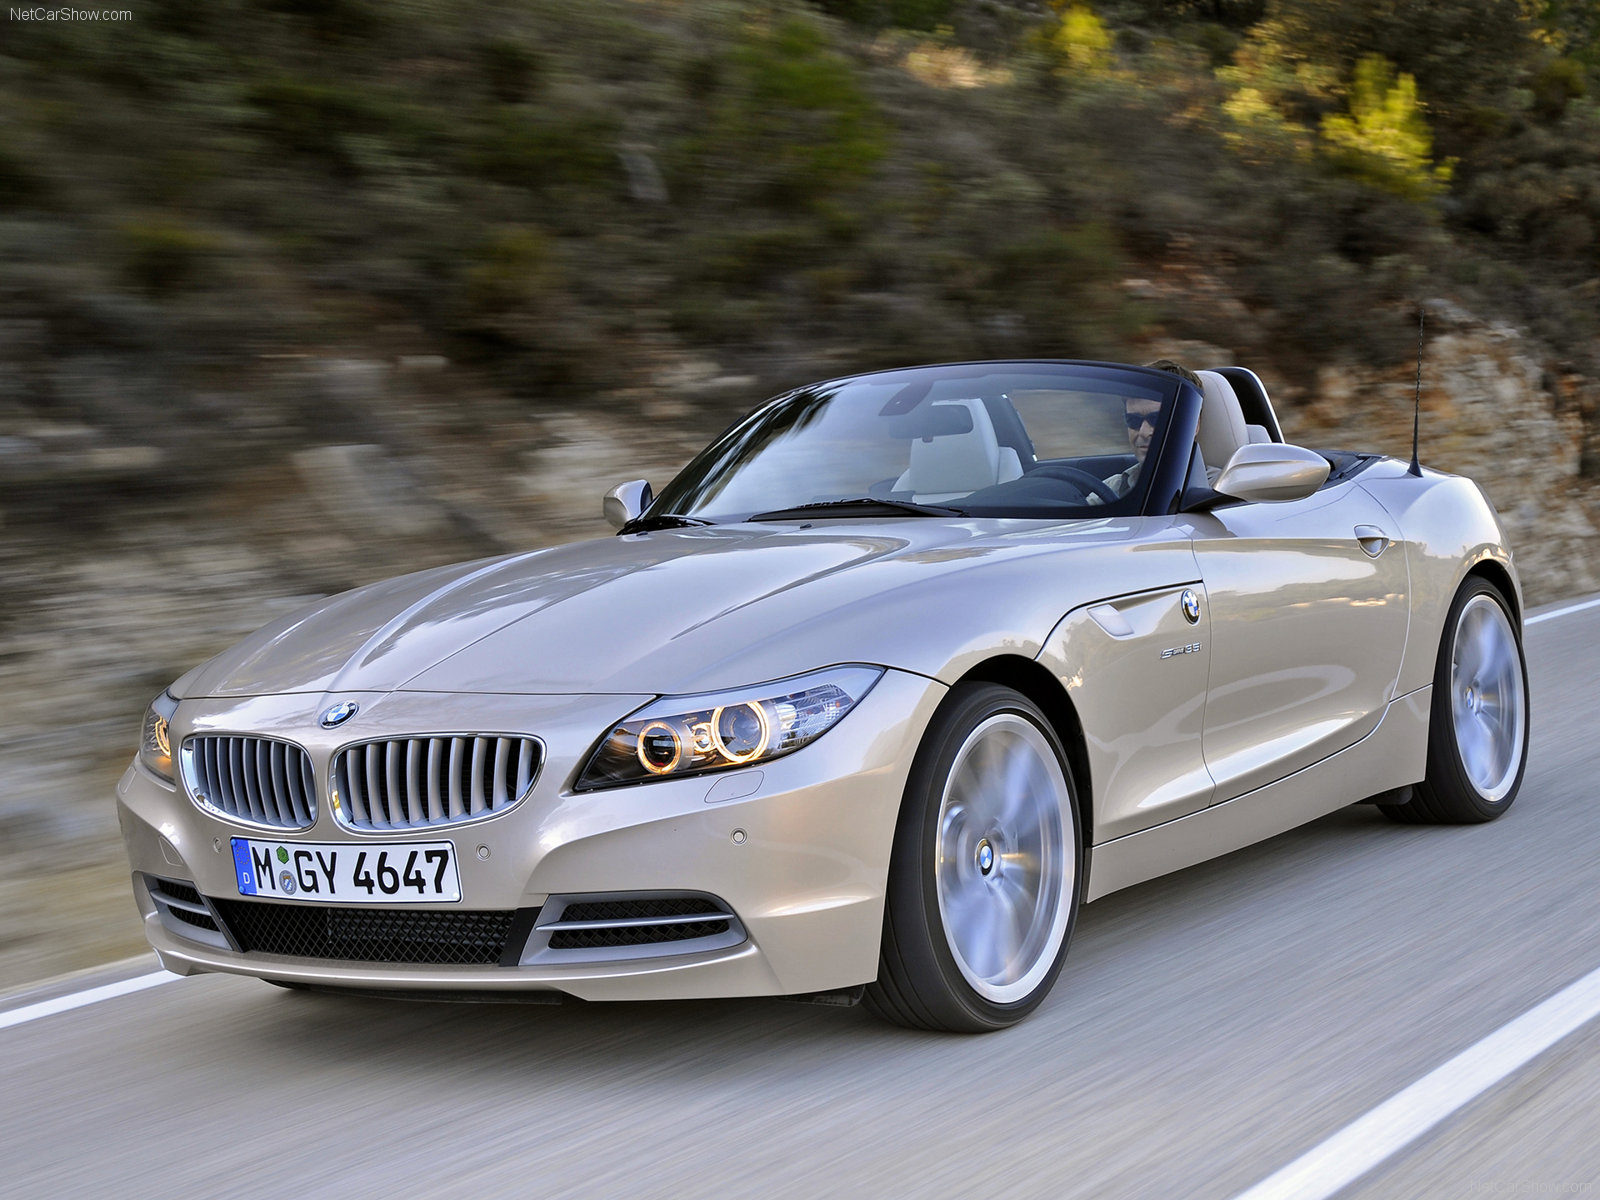 3dtuning Of Bmw Z4 Roadster 2009 3dtuning Com Unique On Line Car Configurator For More Than